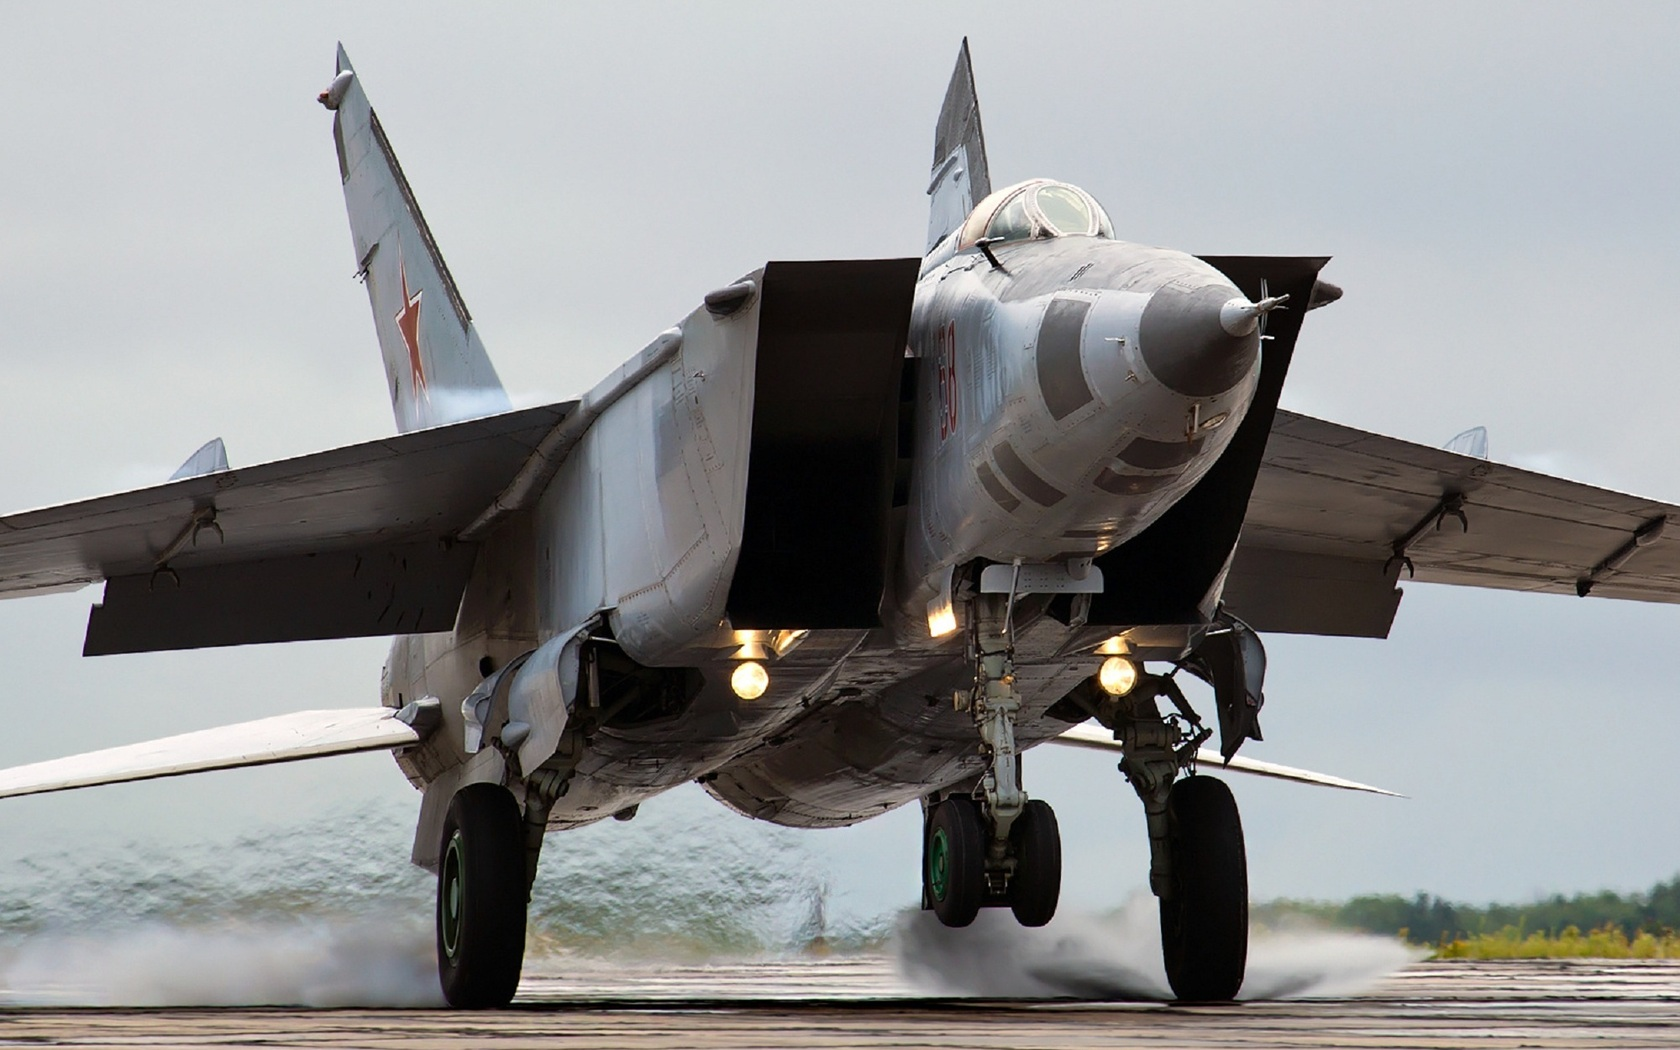 Mikoyan MiG-25, the Original Soviet Rat Rod